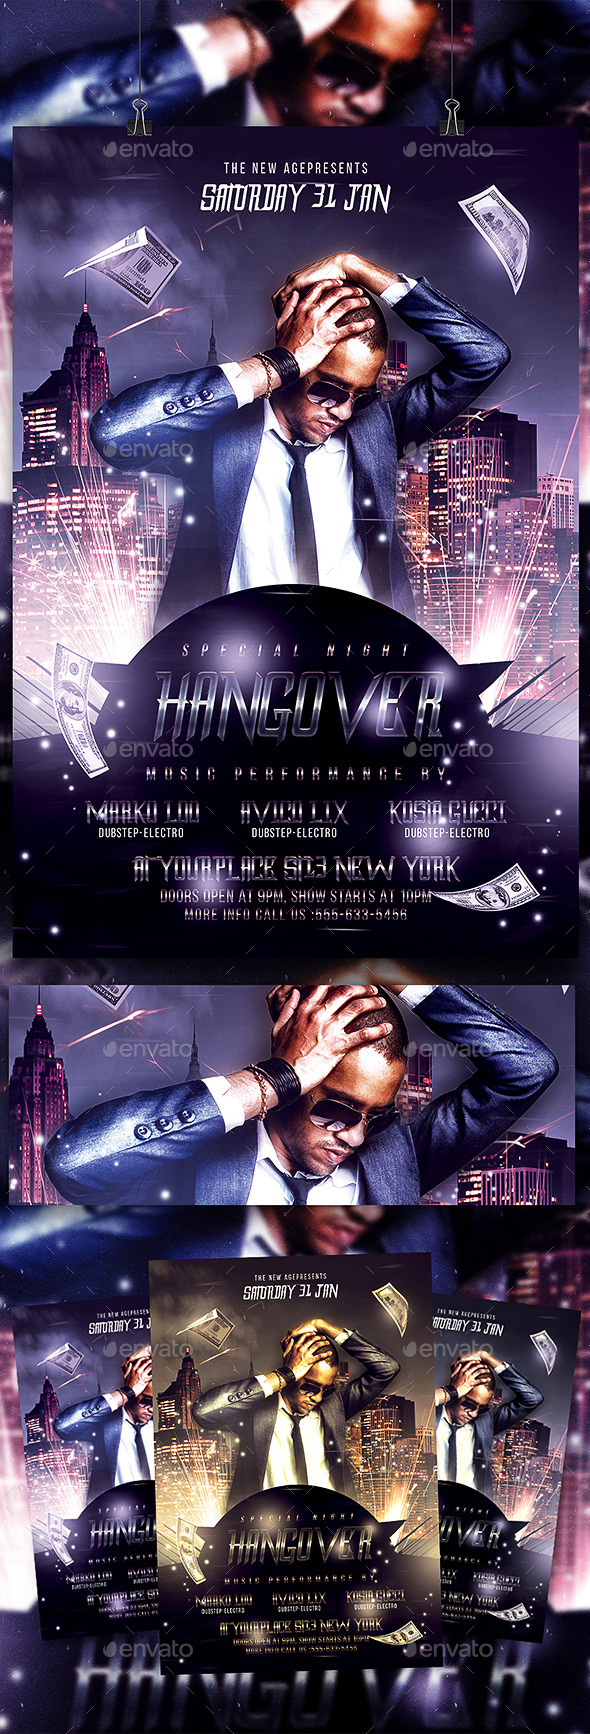 Special Night Hangover Flyer Template